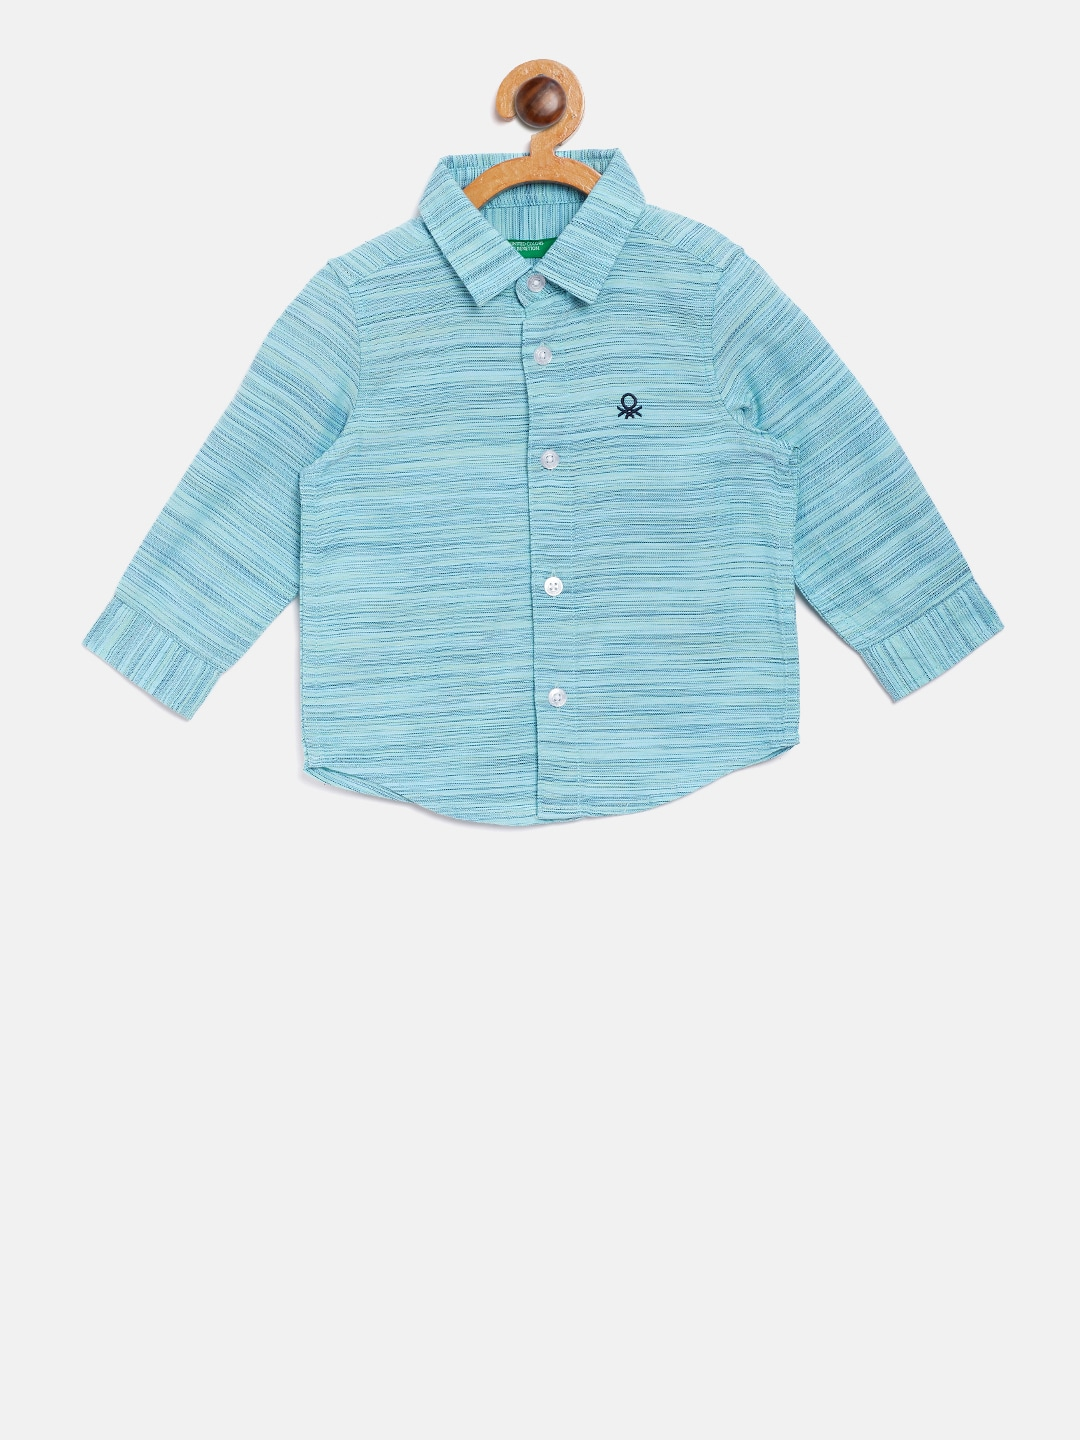 984d50252 UCB - Shop for United Colors of Benetton Online in India